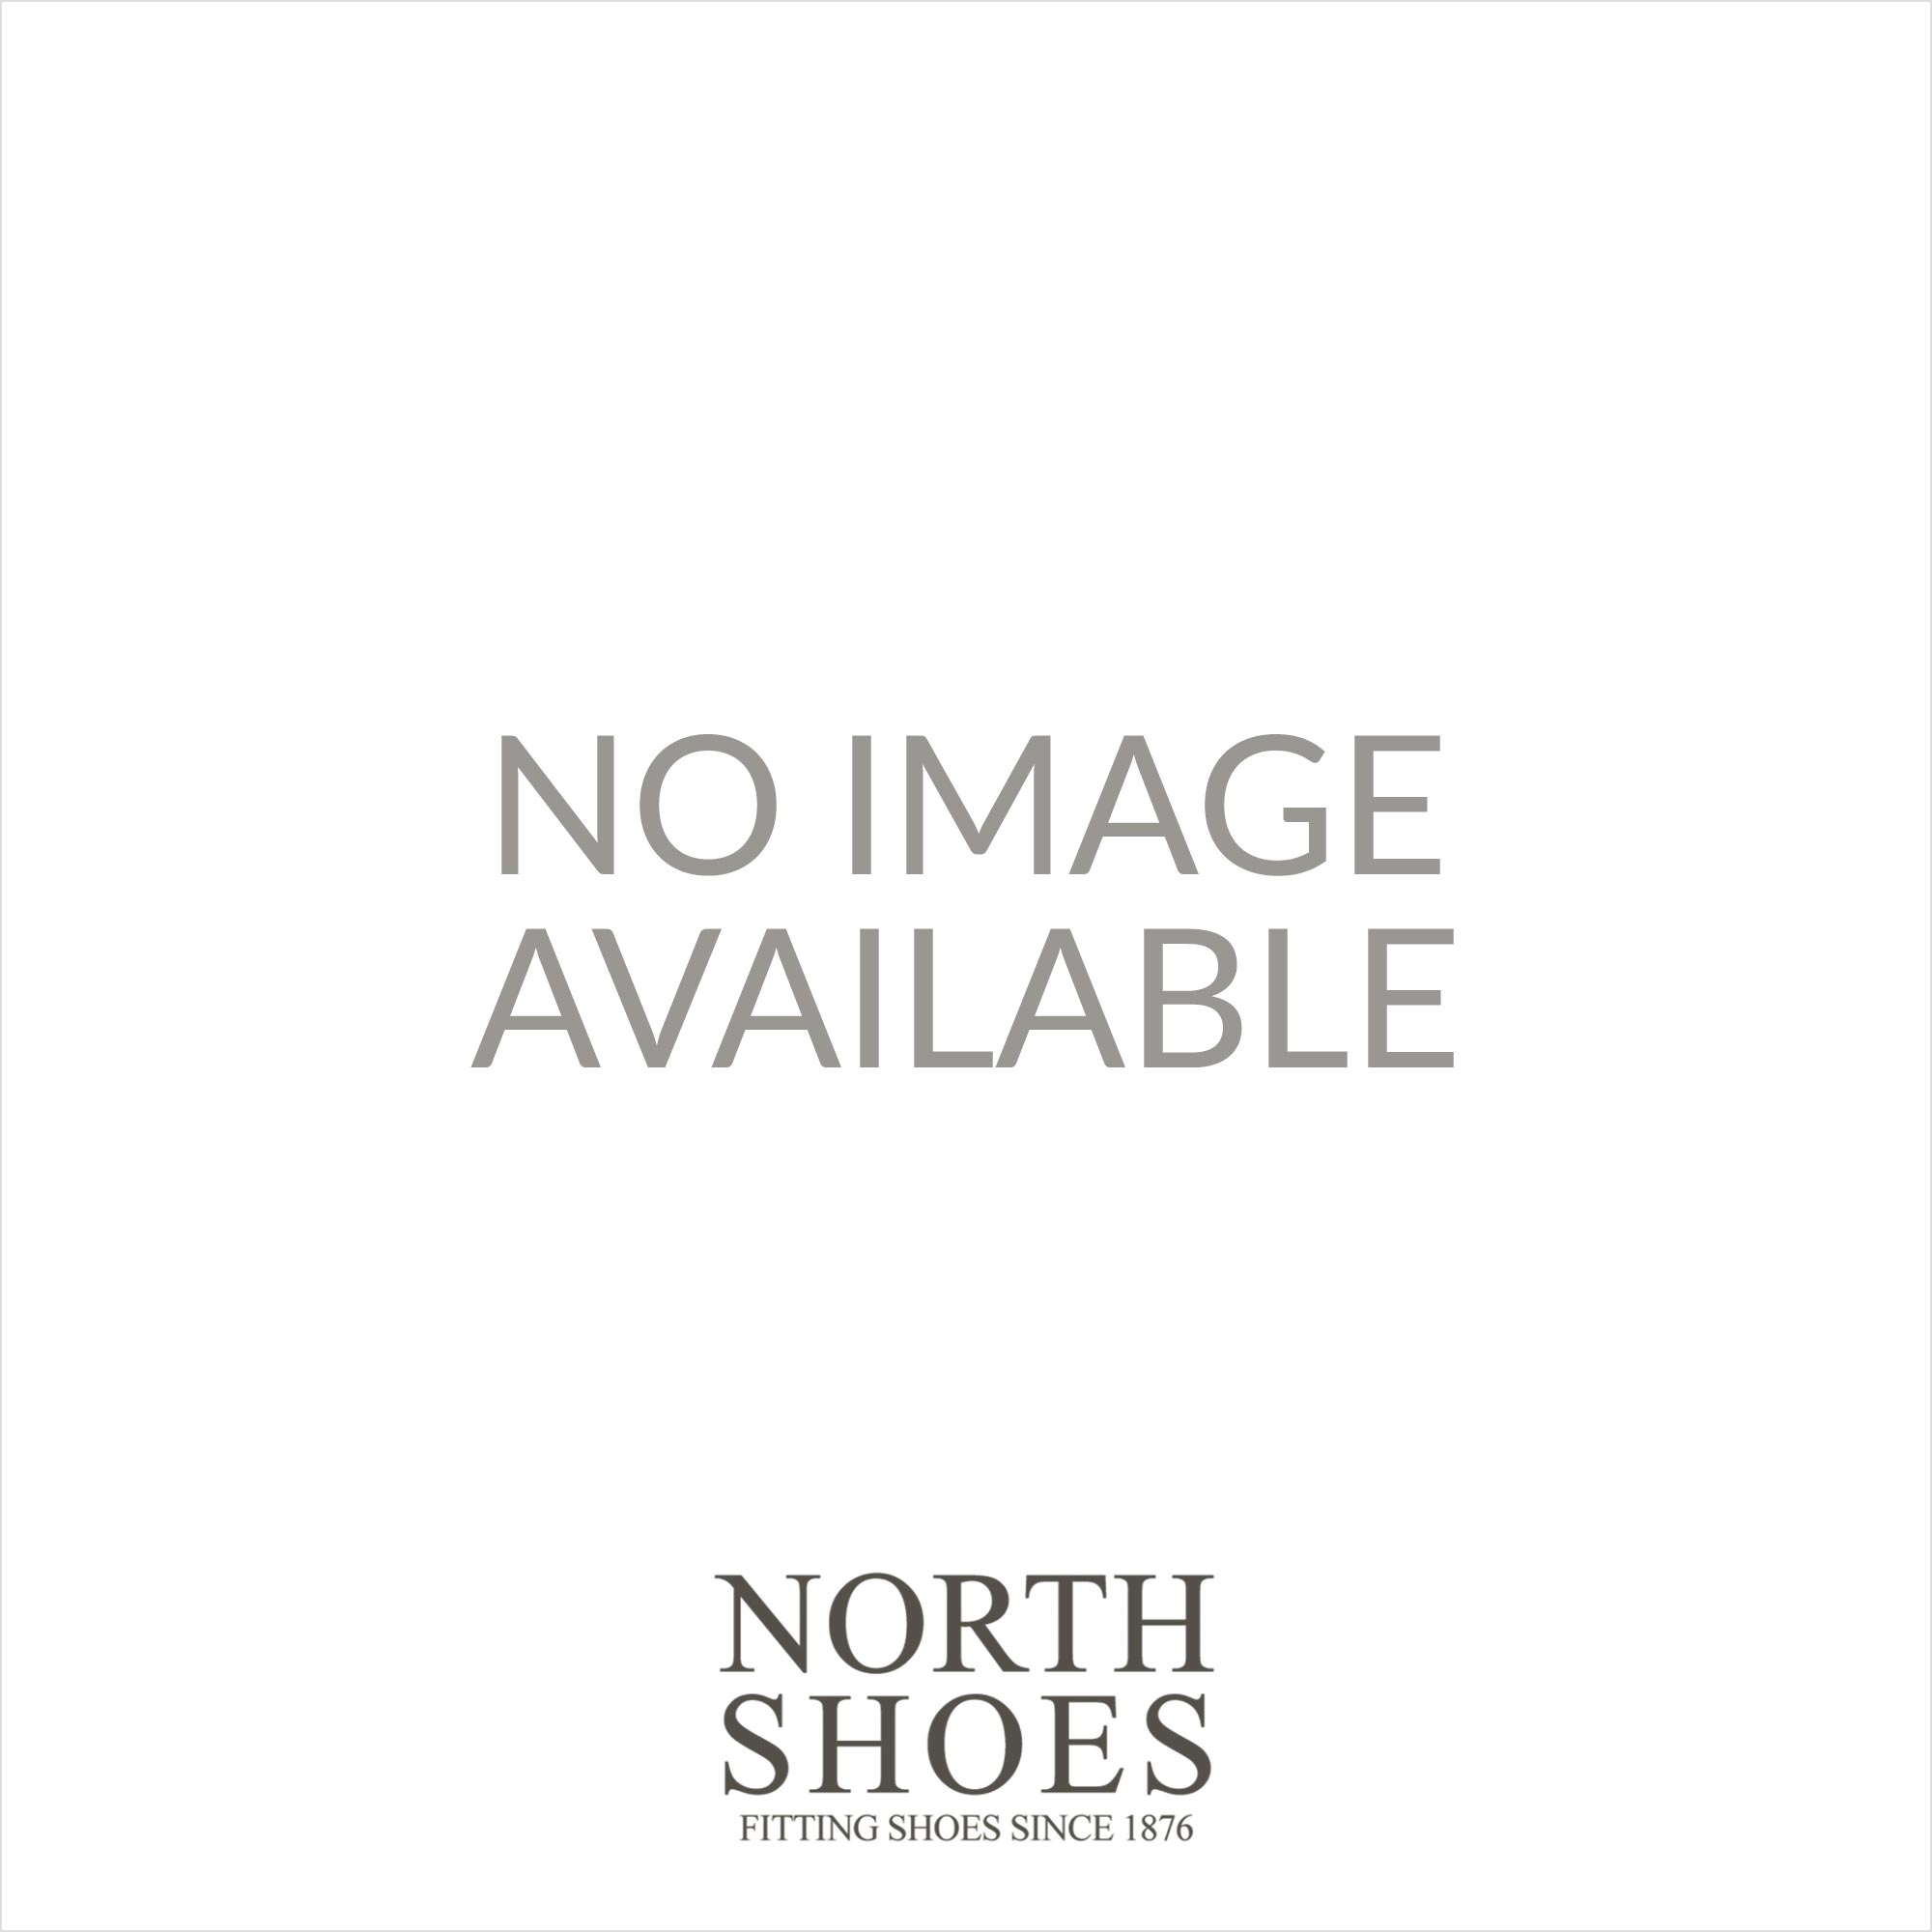 1af3c088e86e Skechers On the Go 600 15300 Turquoise Knitted Mesh Womens Toe Post Flip  Flop Sandal - UK 6½ - Skechers from North Shoes UK